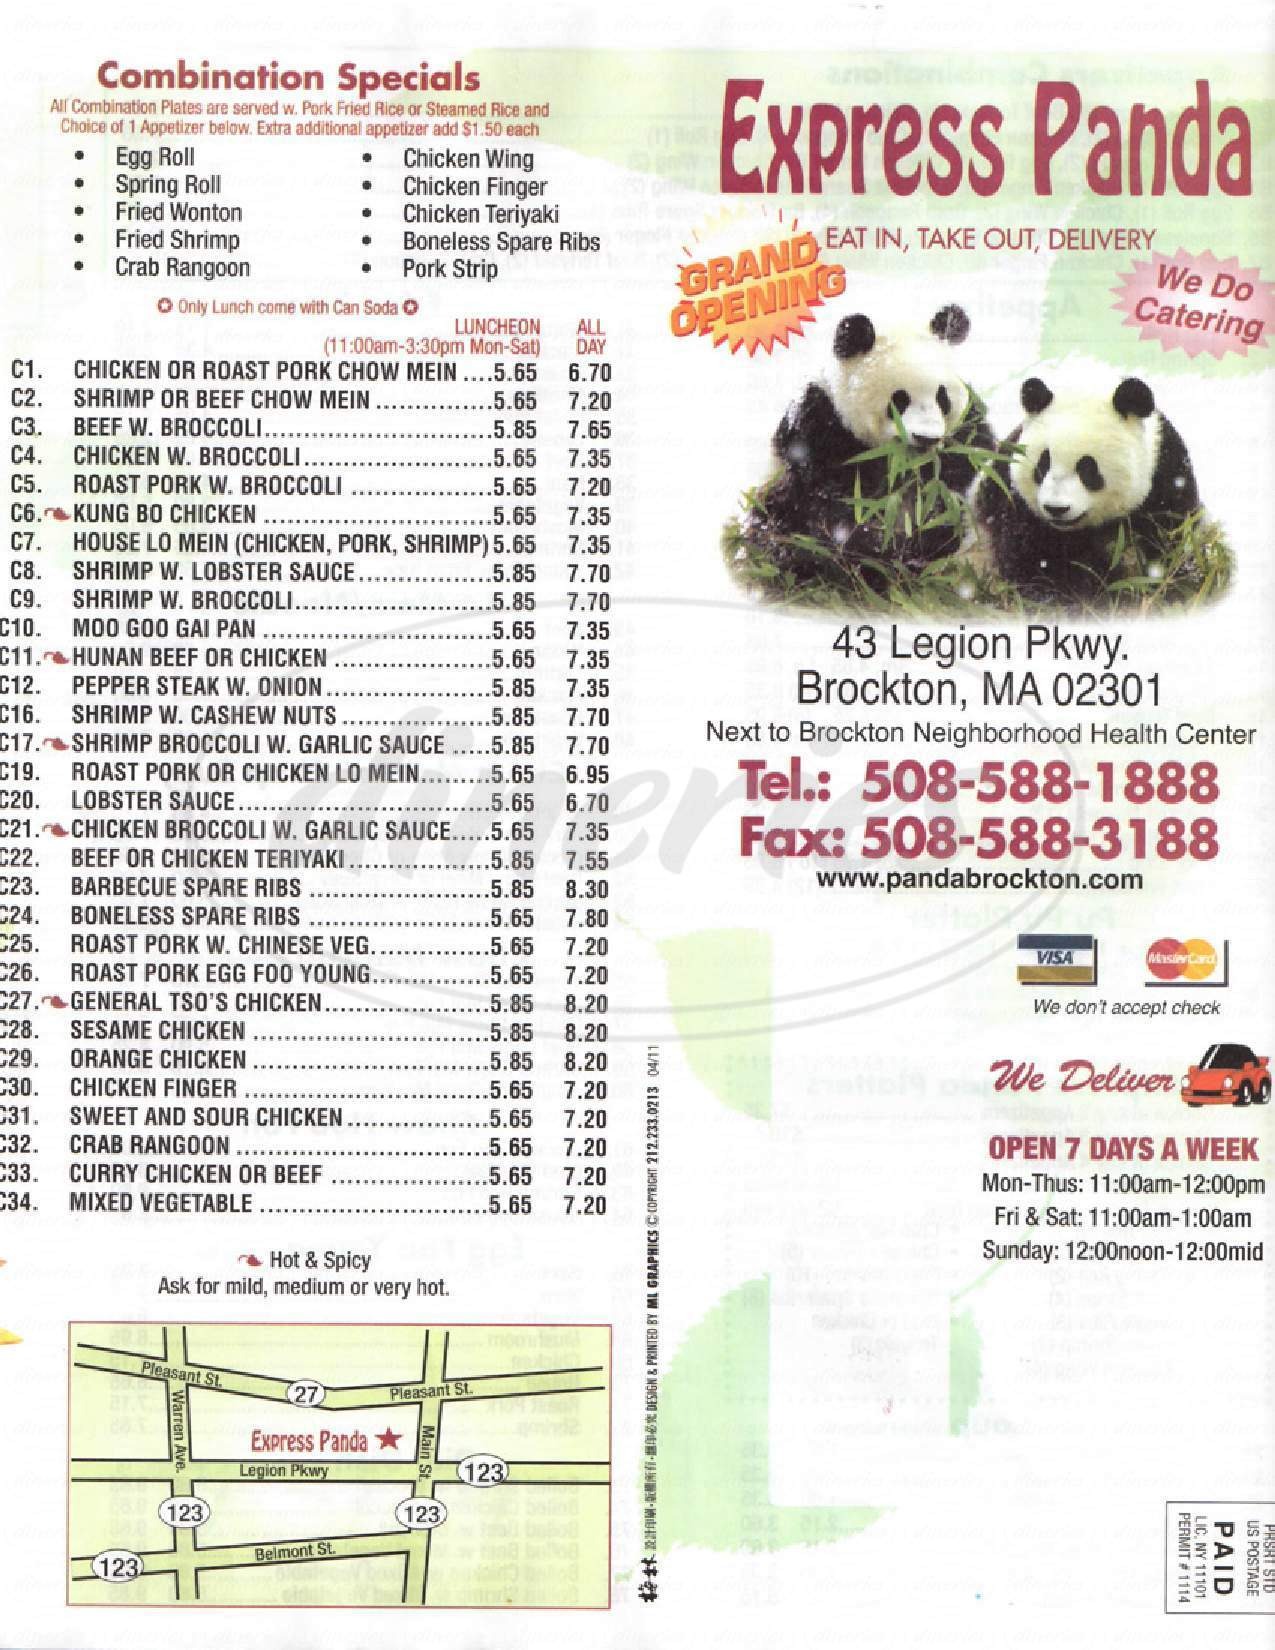 menu for Express Panda